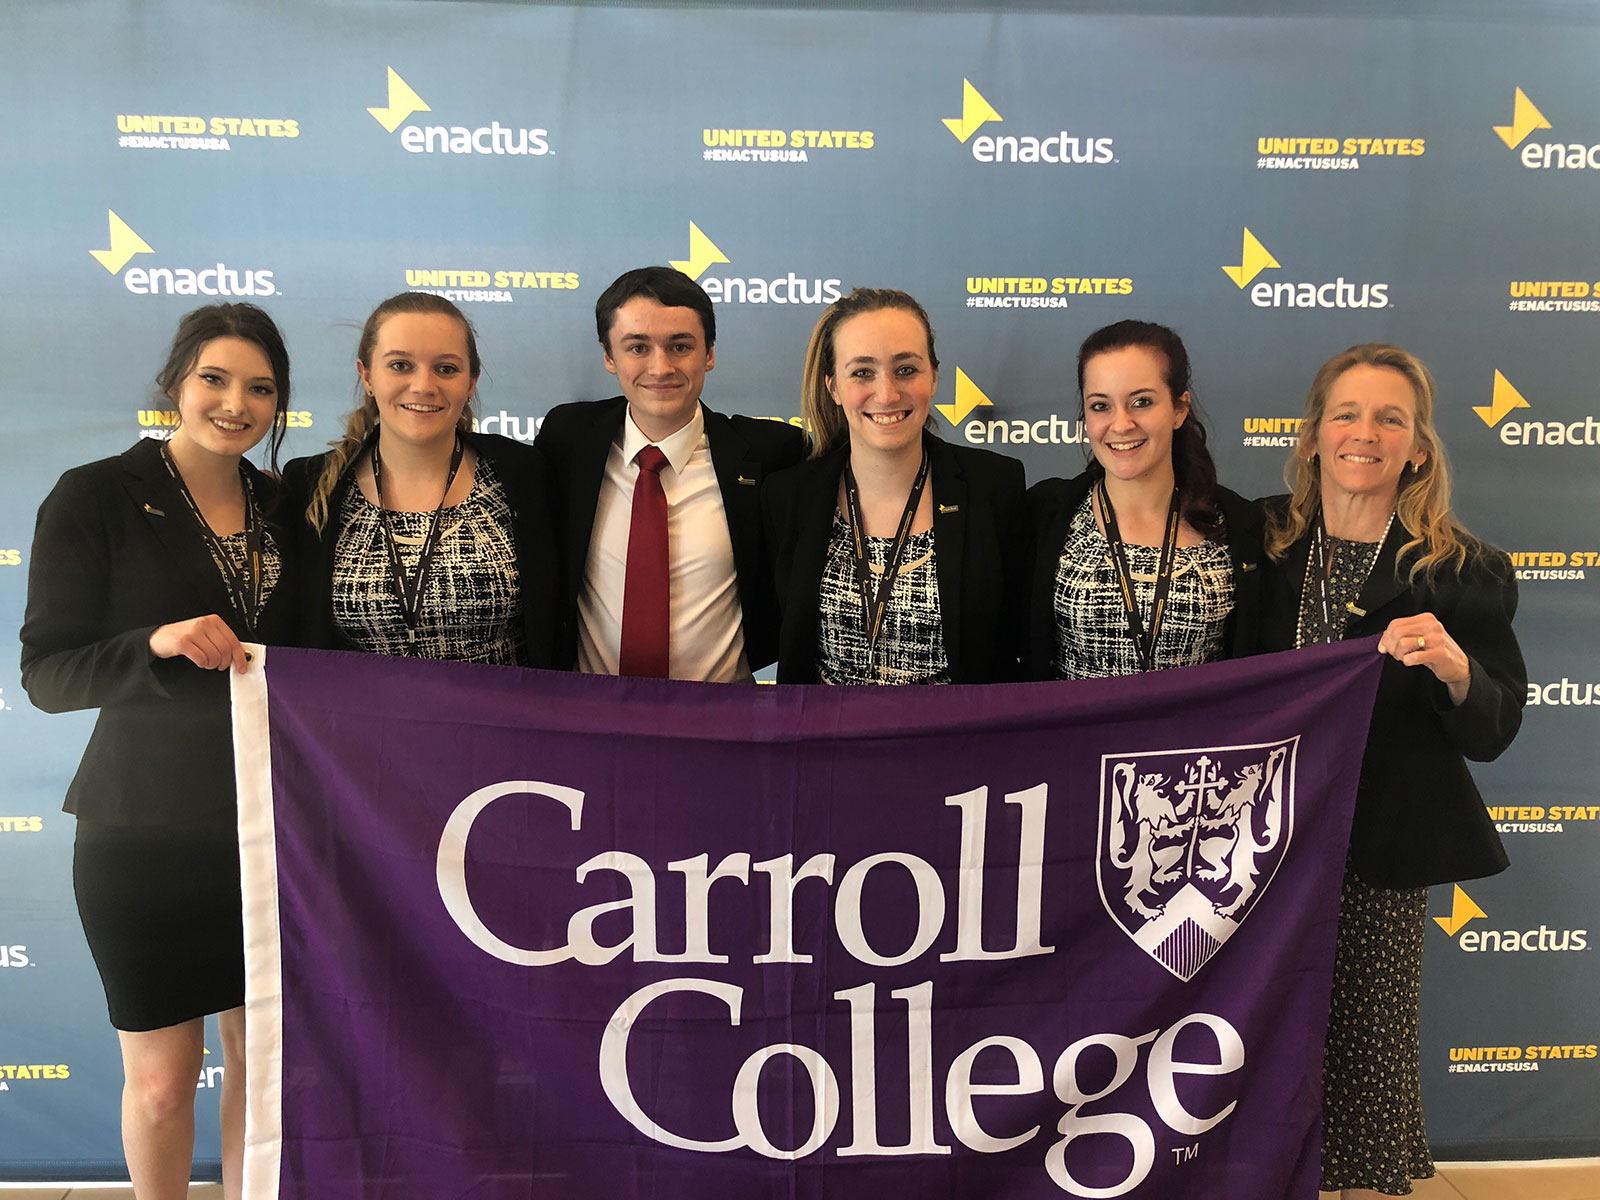 Carroll College Students with Carroll College Flag